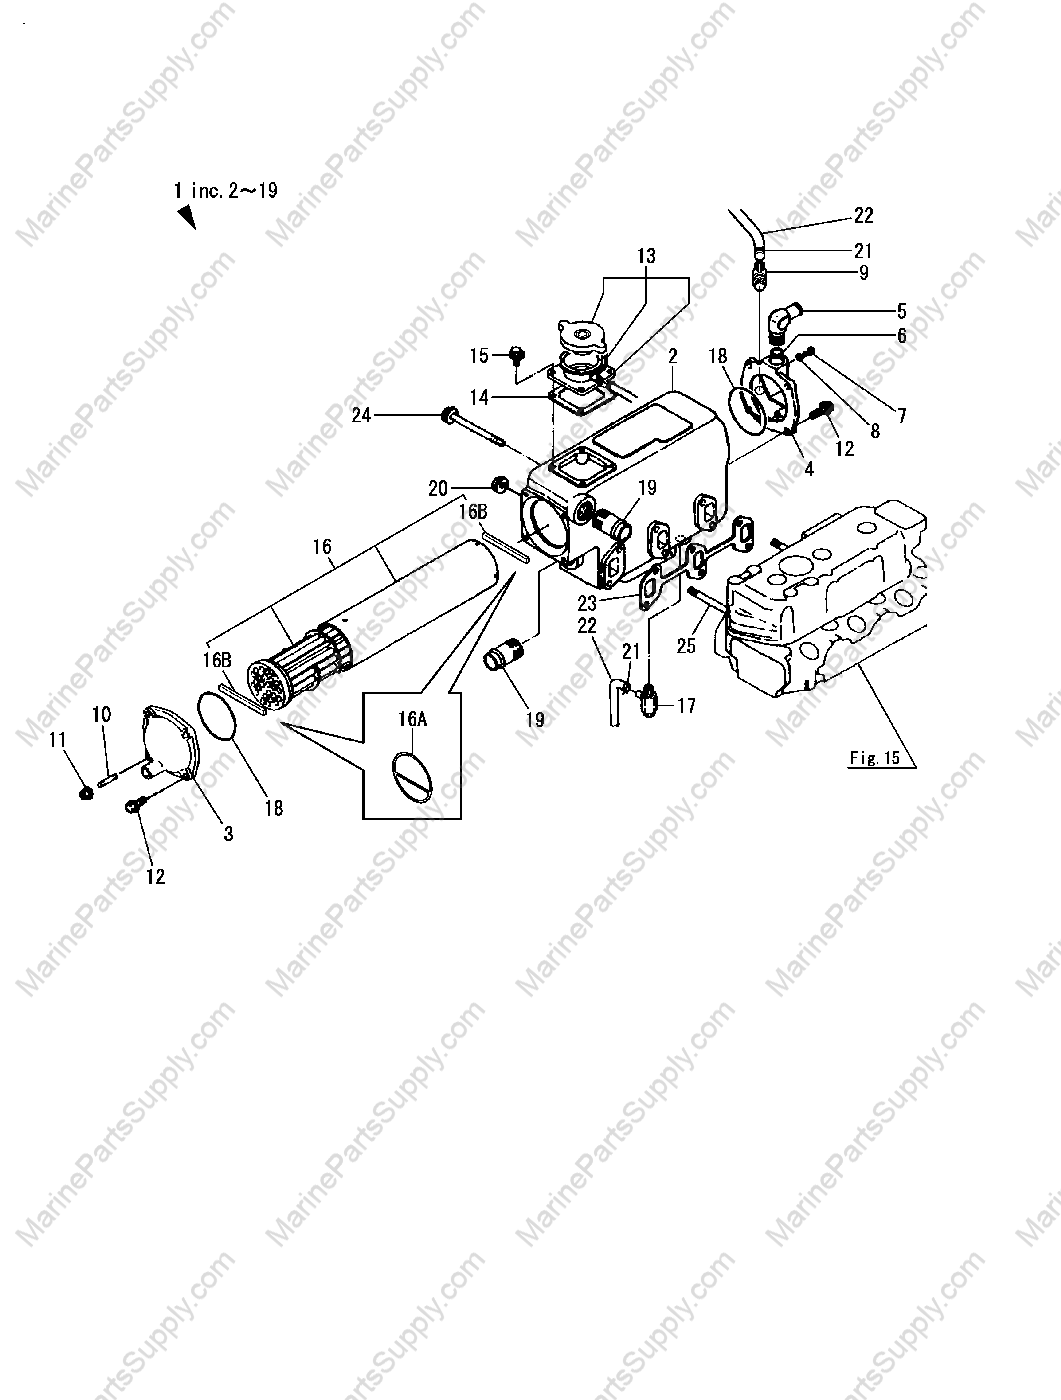 1006 8l 01 powerstroke fuel bowl rebuild fuel filter canister additionally 128270 11310 500x500 moreover evo electricalsystem yanmar 2gm20 parts diagram